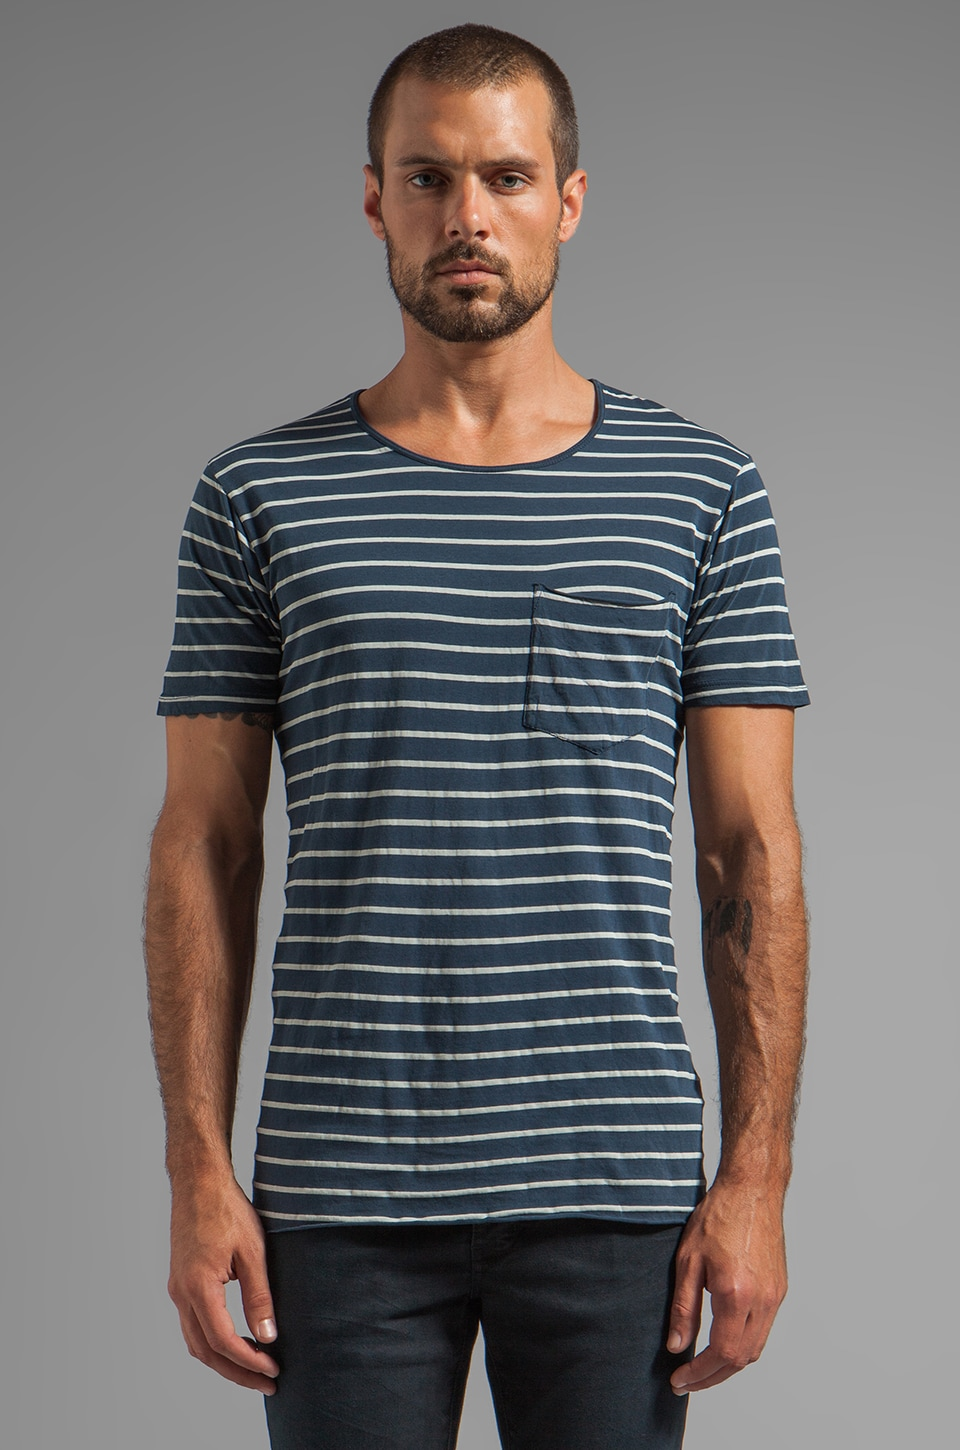 NEUW Enkel Stripe Pocket Tee in Midnight